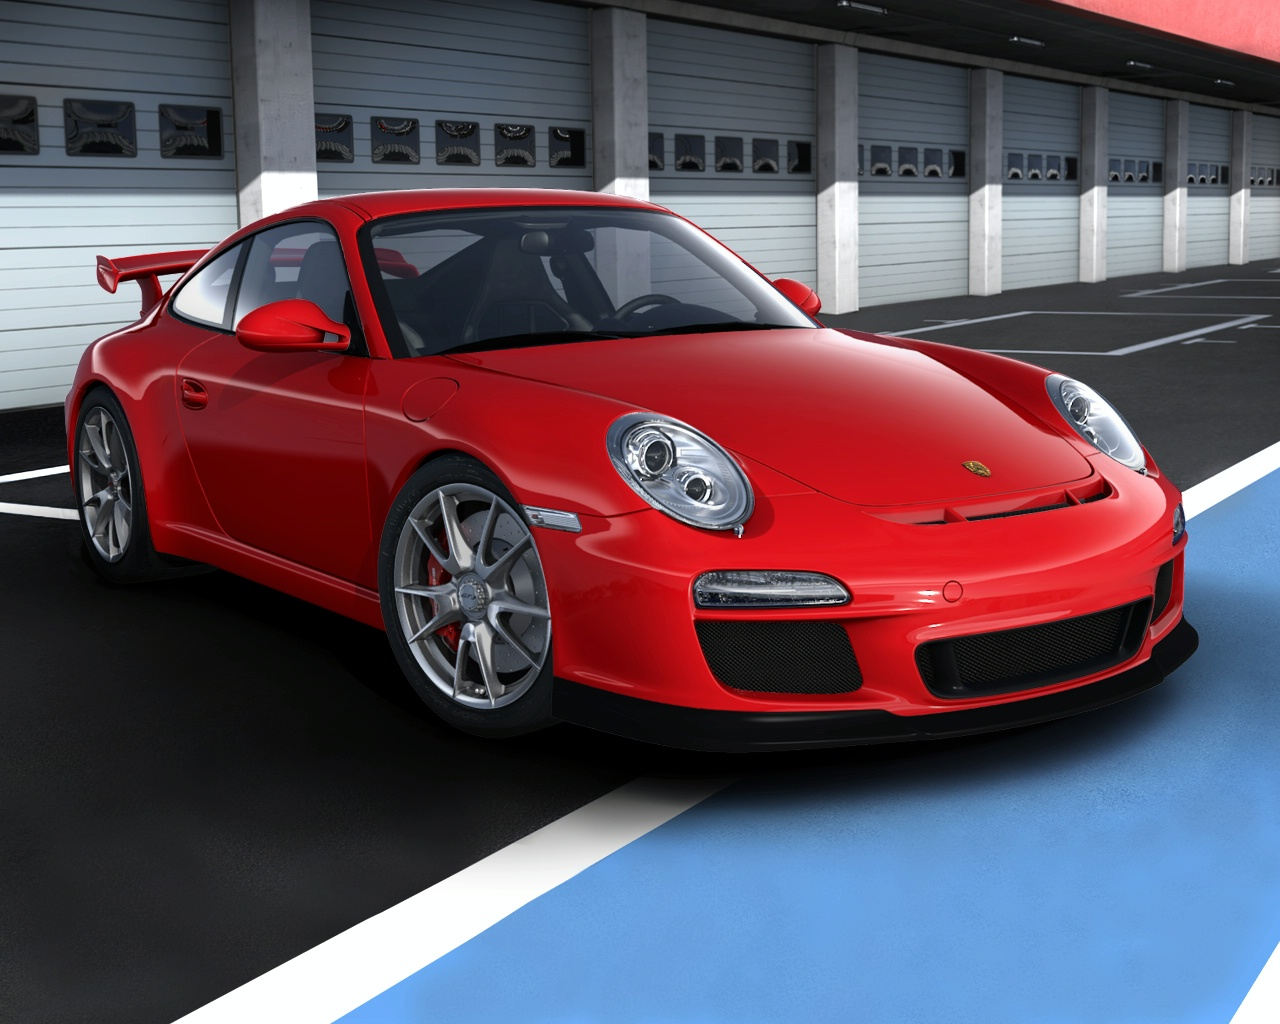 2010 porsche 911 gt3 the king is back the connection between man and machine. Black Bedroom Furniture Sets. Home Design Ideas